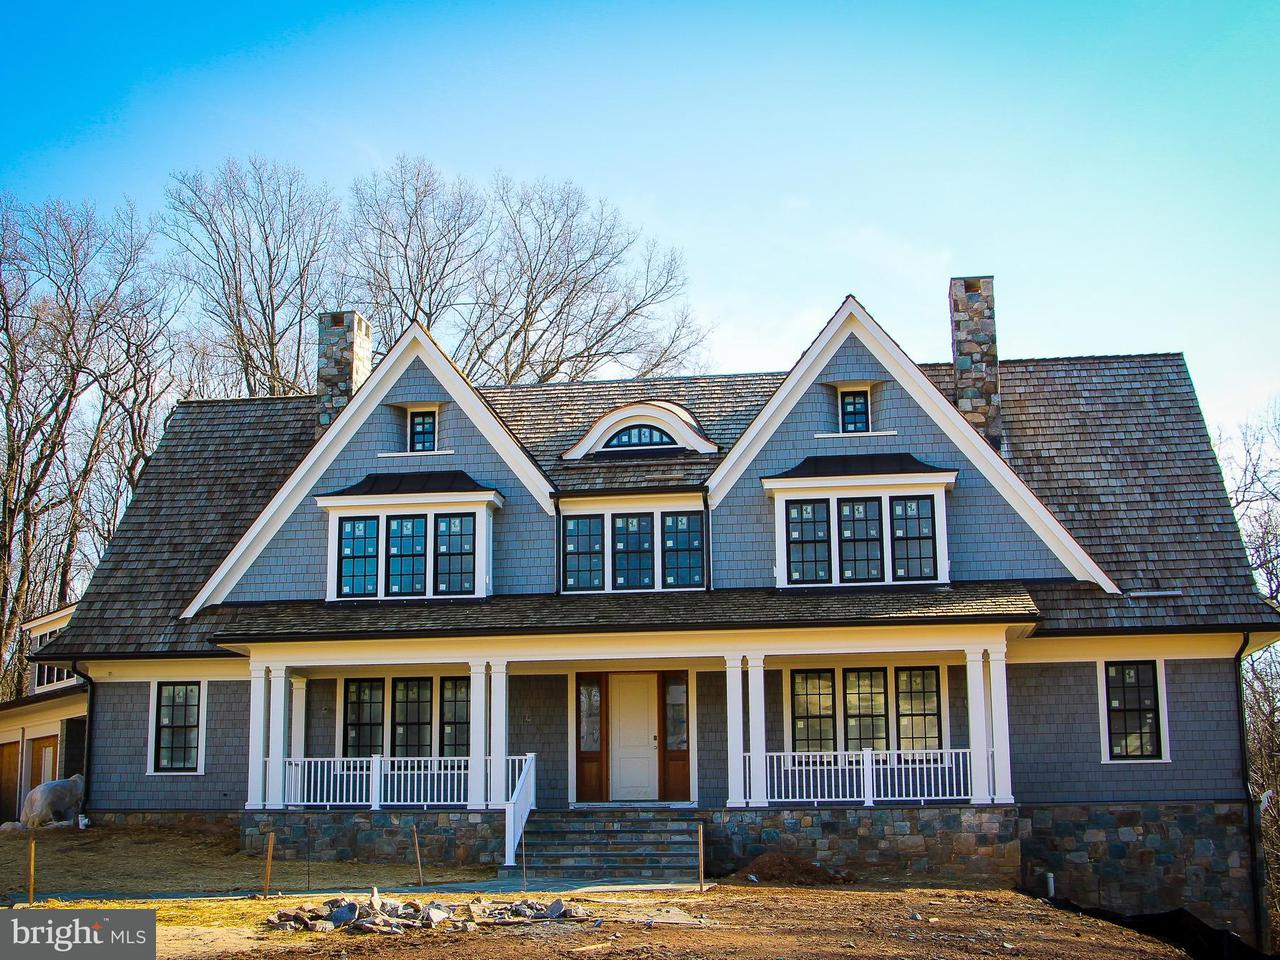 Single Family Home for Sale at 1321 Rockland Ter 1321 Rockland Ter McLean, Virginia 22101 United States